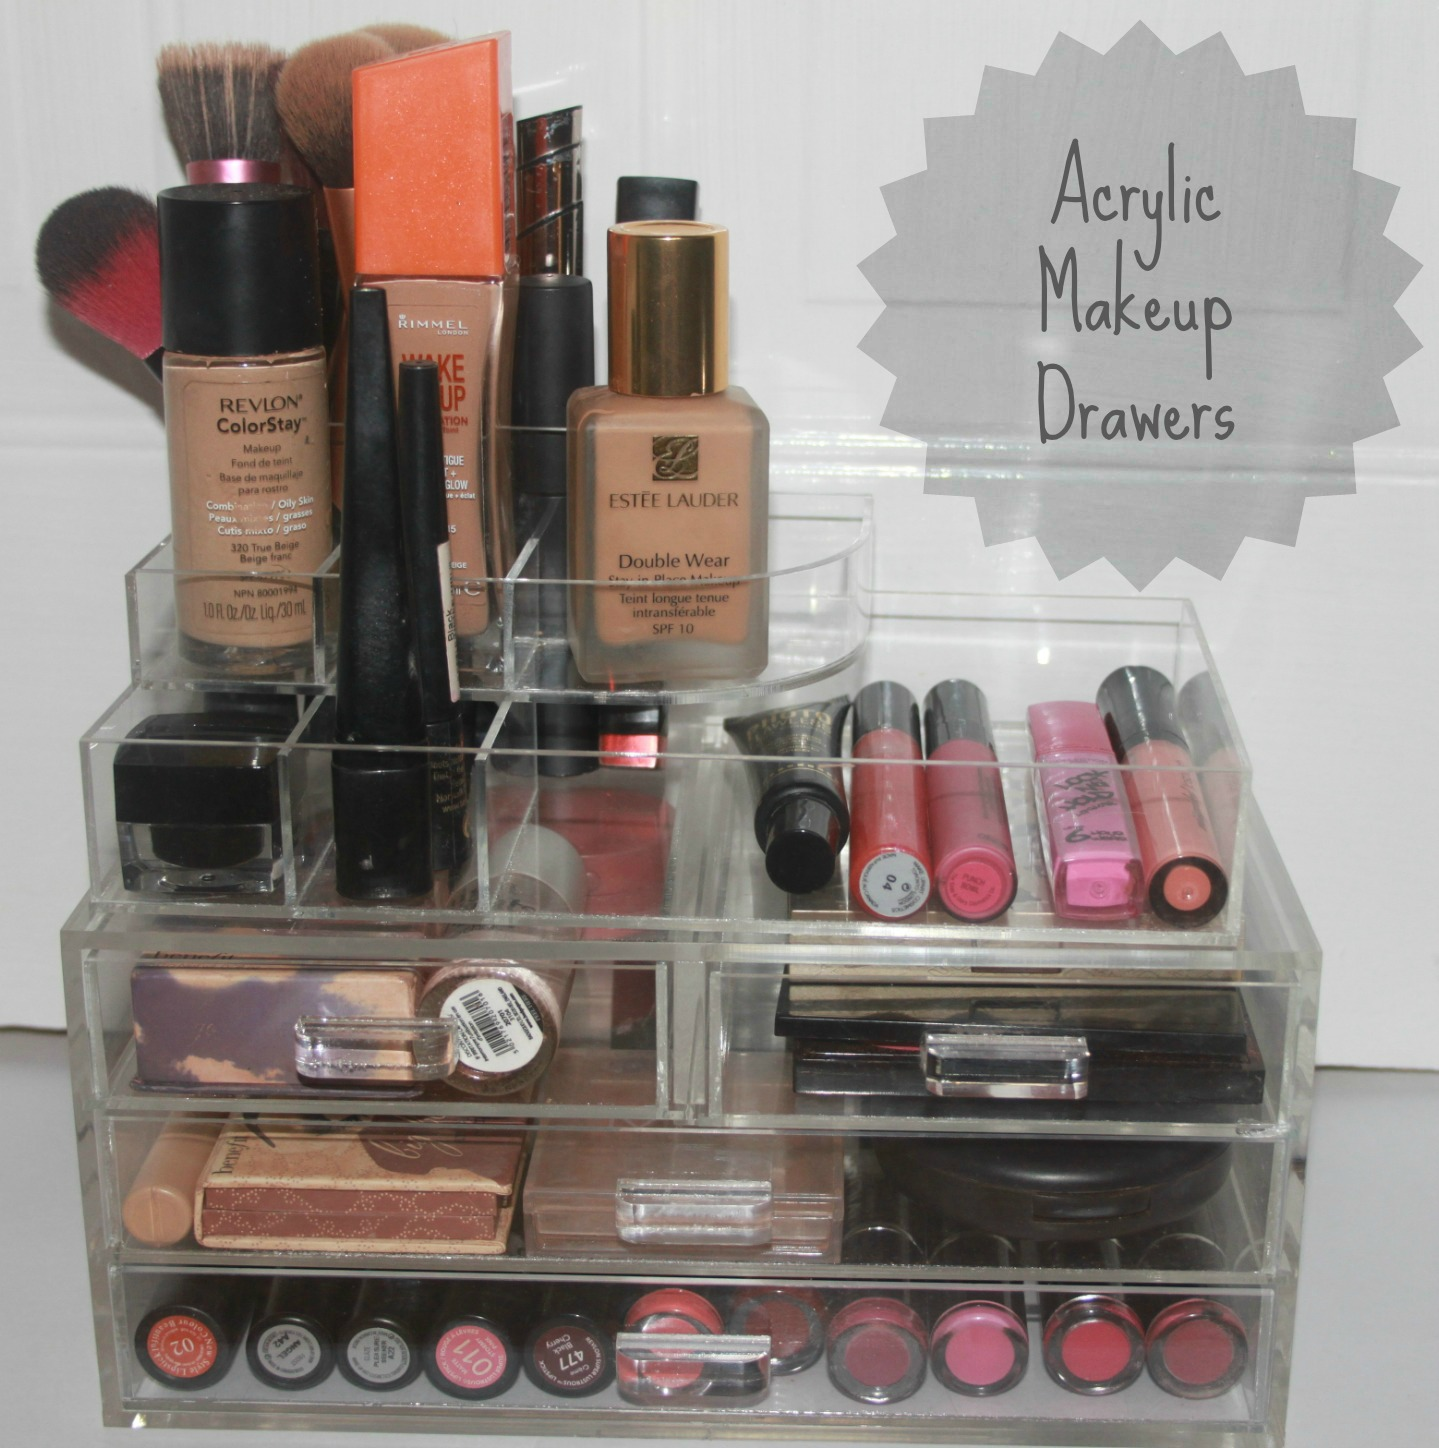 The Big Burd: Acrylic Makeup Storage Kardashian Style!